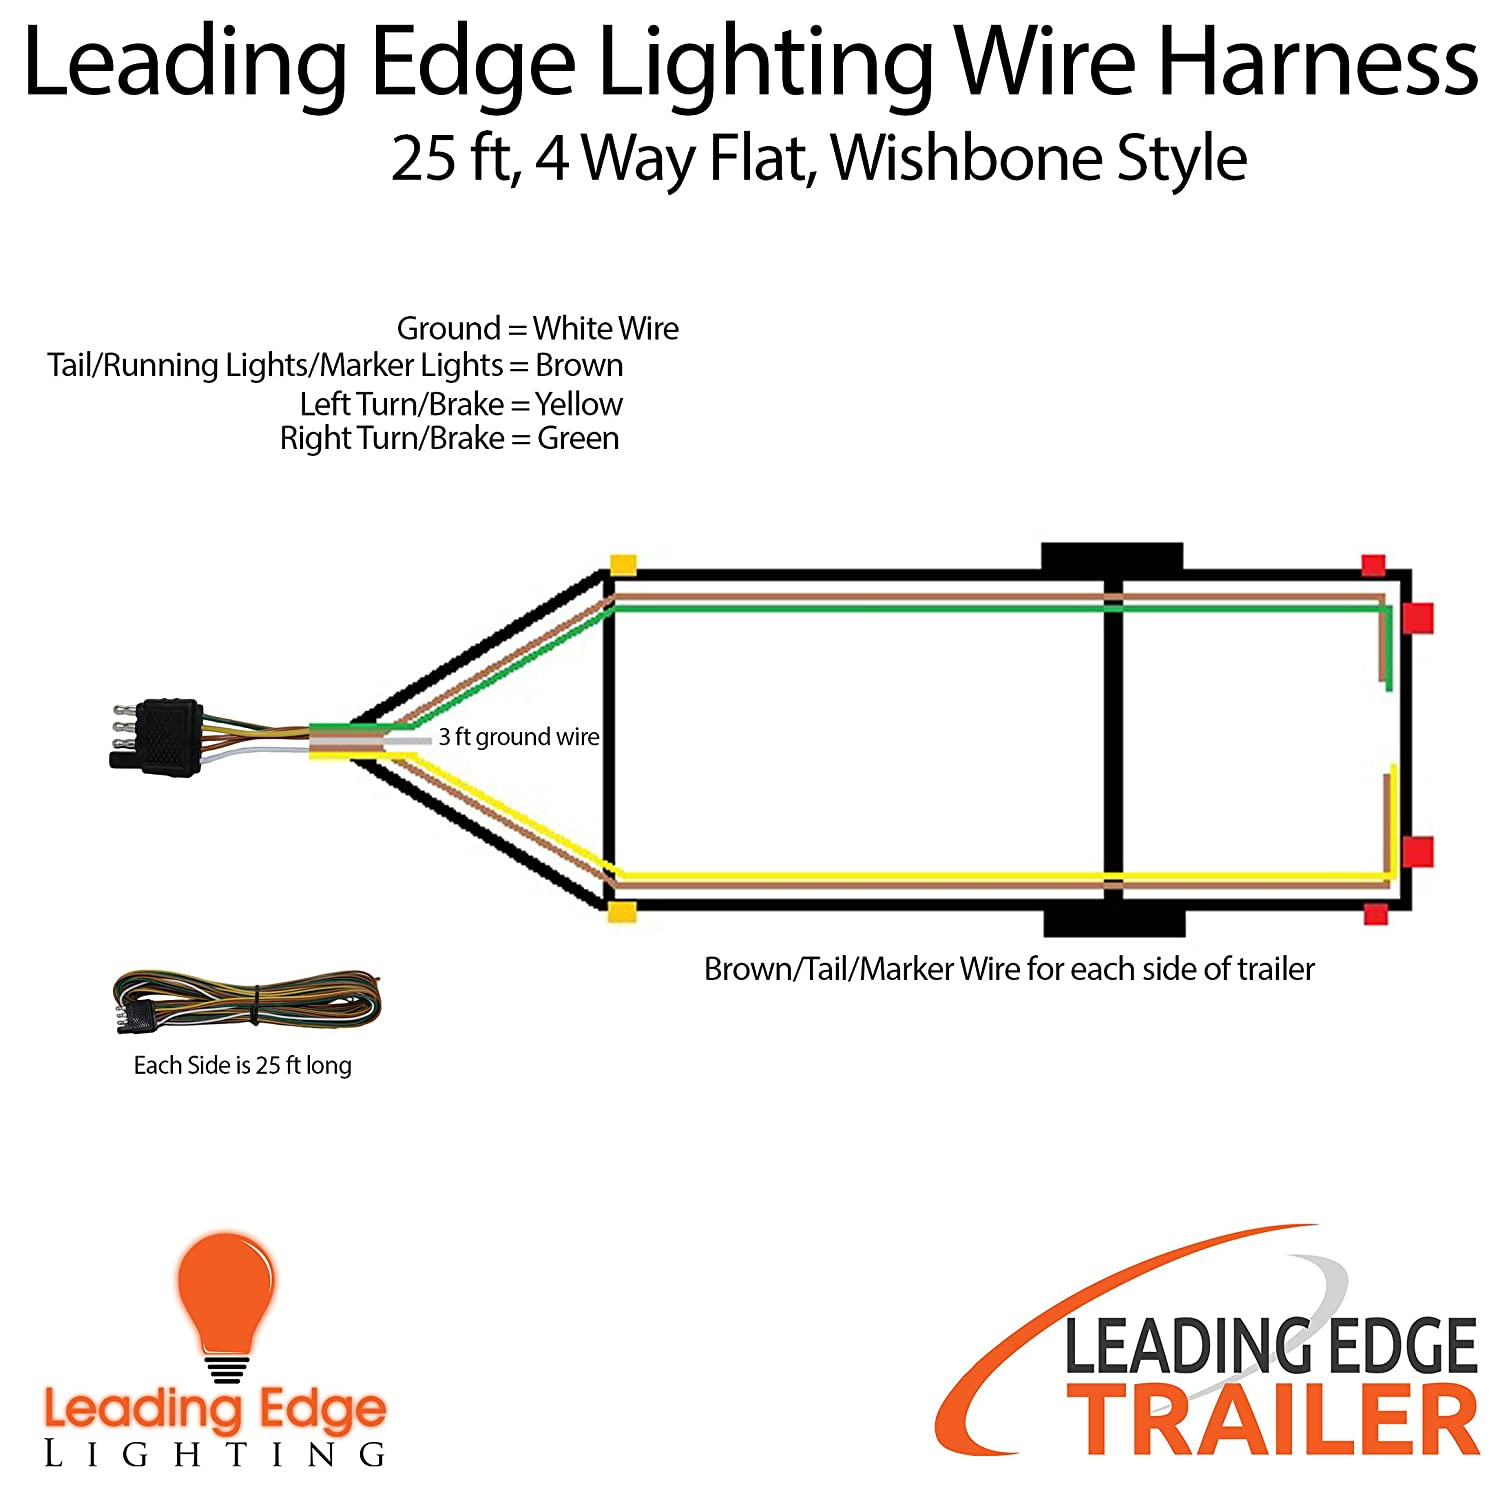 4 flat wire harness wiring diagrams rh katagiri co 4 flat wiring harness 7 pin flat wiring harness